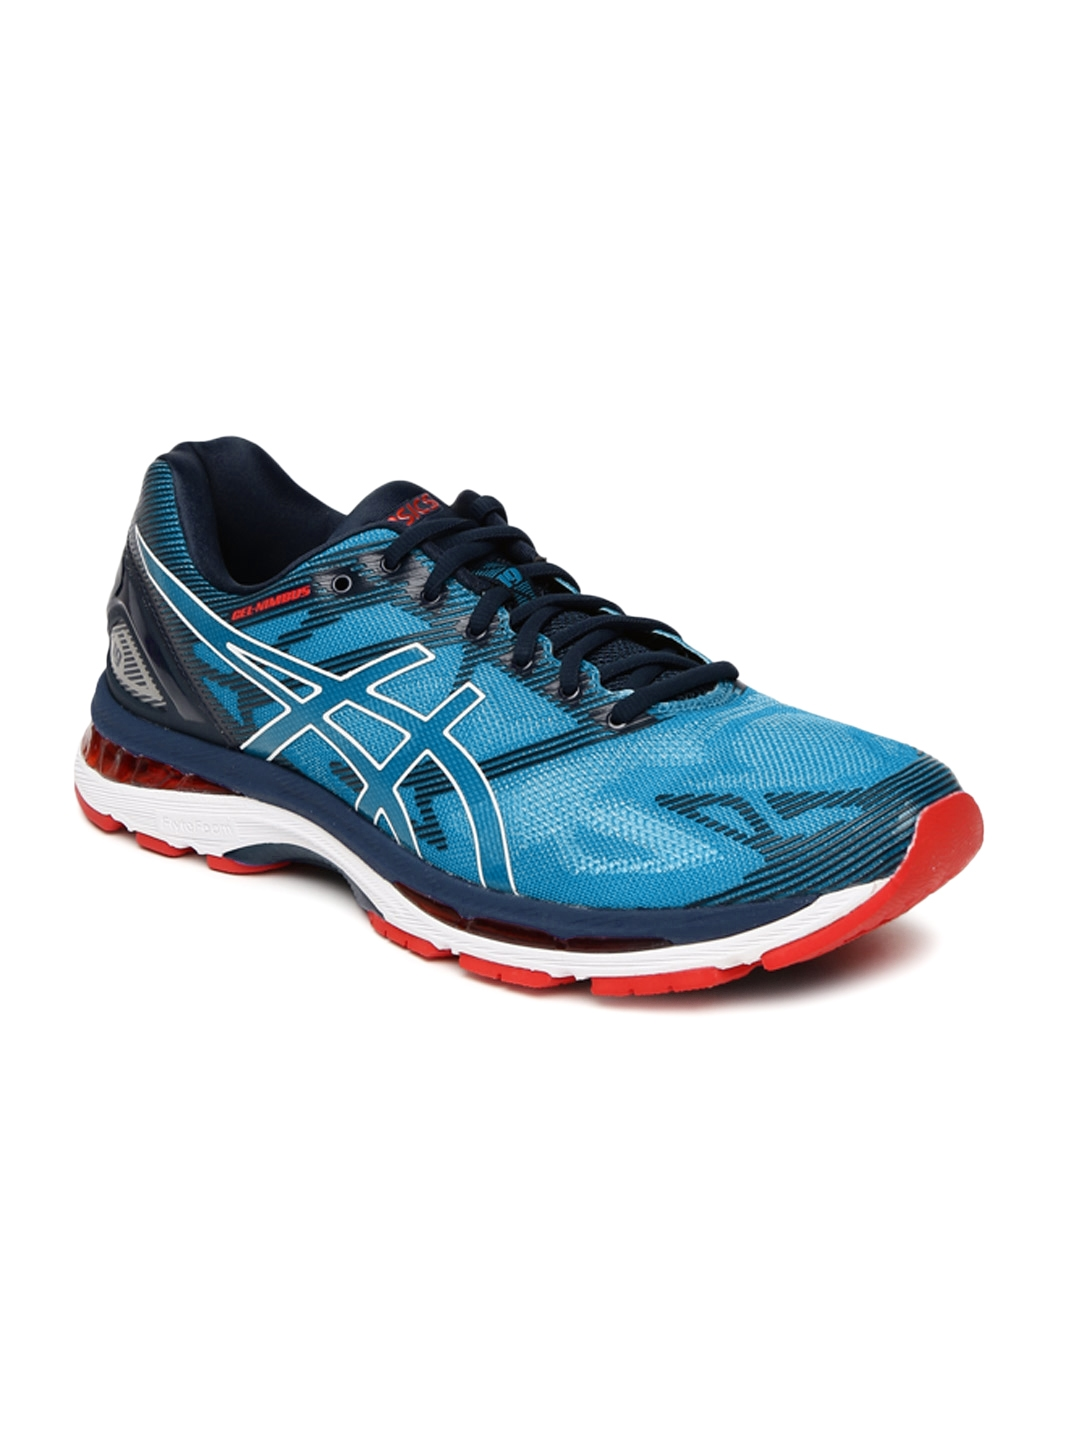 finest selection dfc34 31c7e ASICS Men Blue GEL-NIMBUS 19 Running Shoes